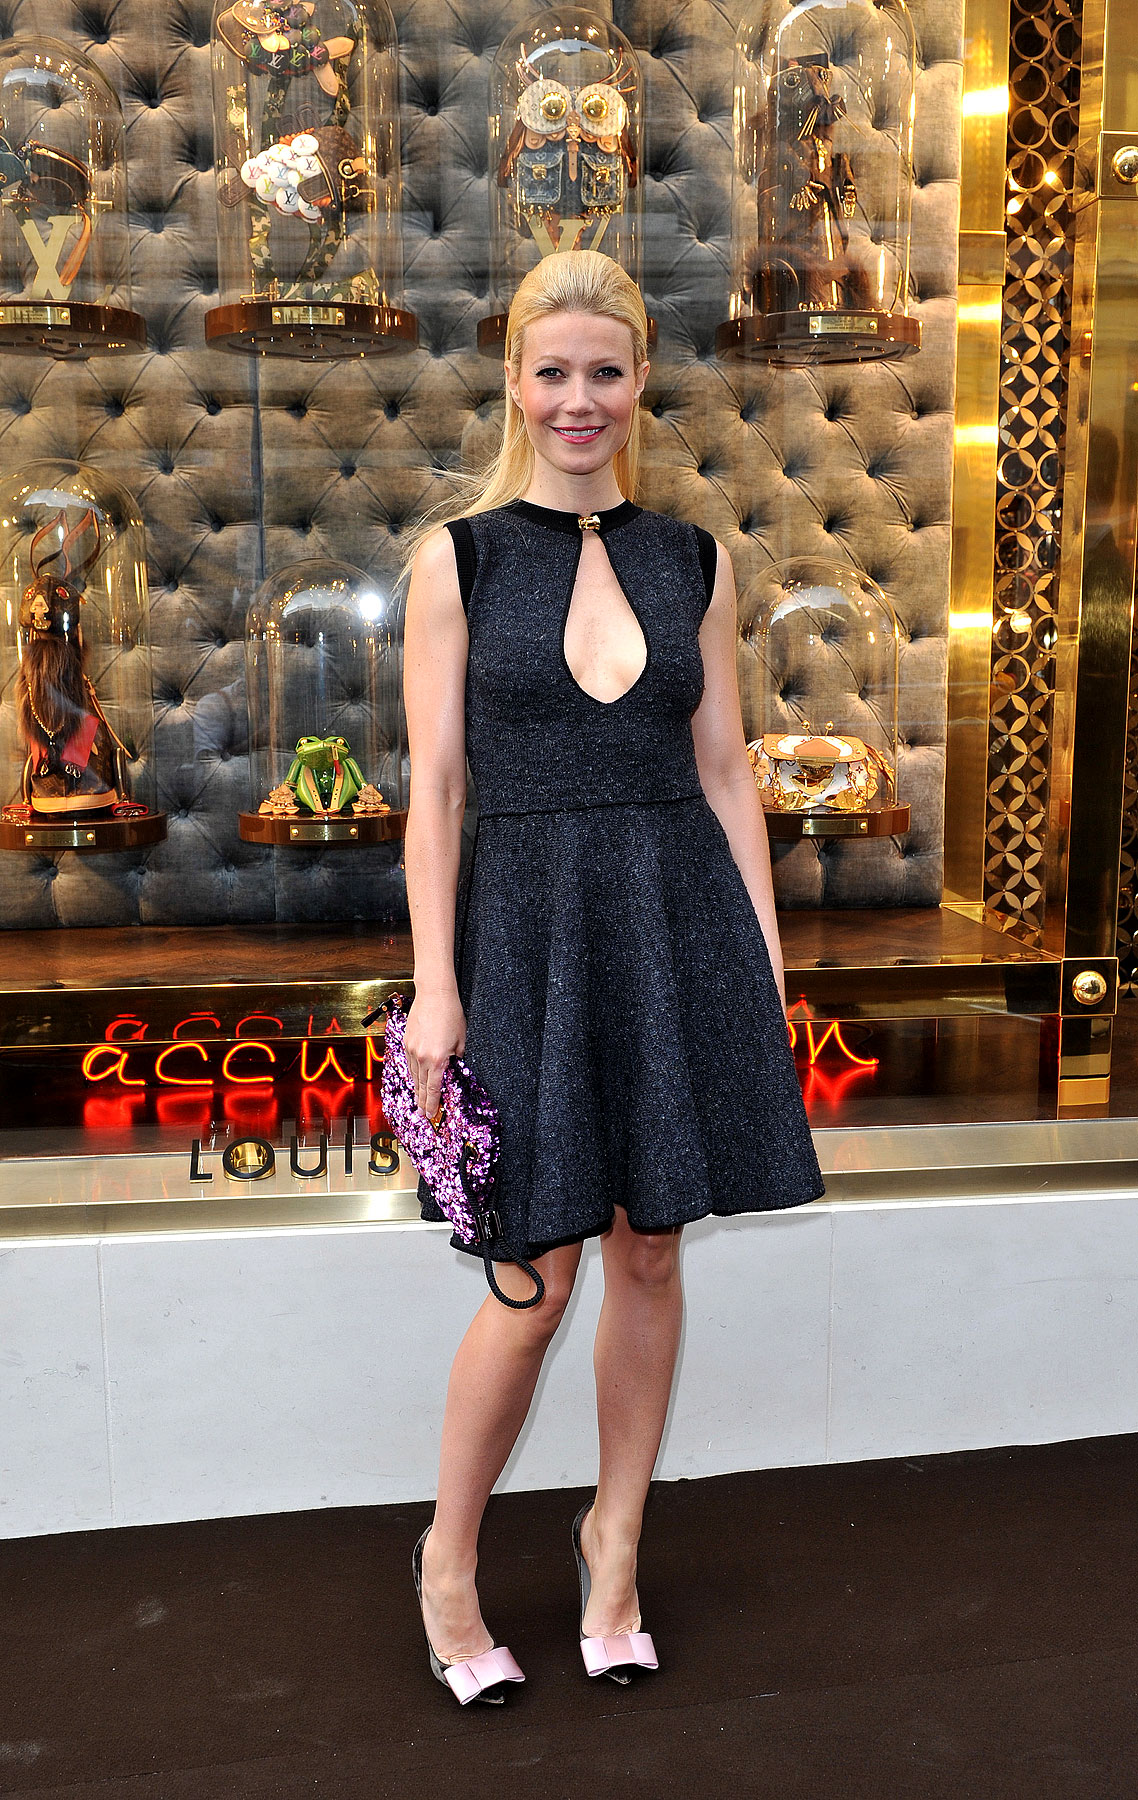 Fashion FTW: Gwyneth Paltrow Exposes Her Chest Plate (PHOTOS)